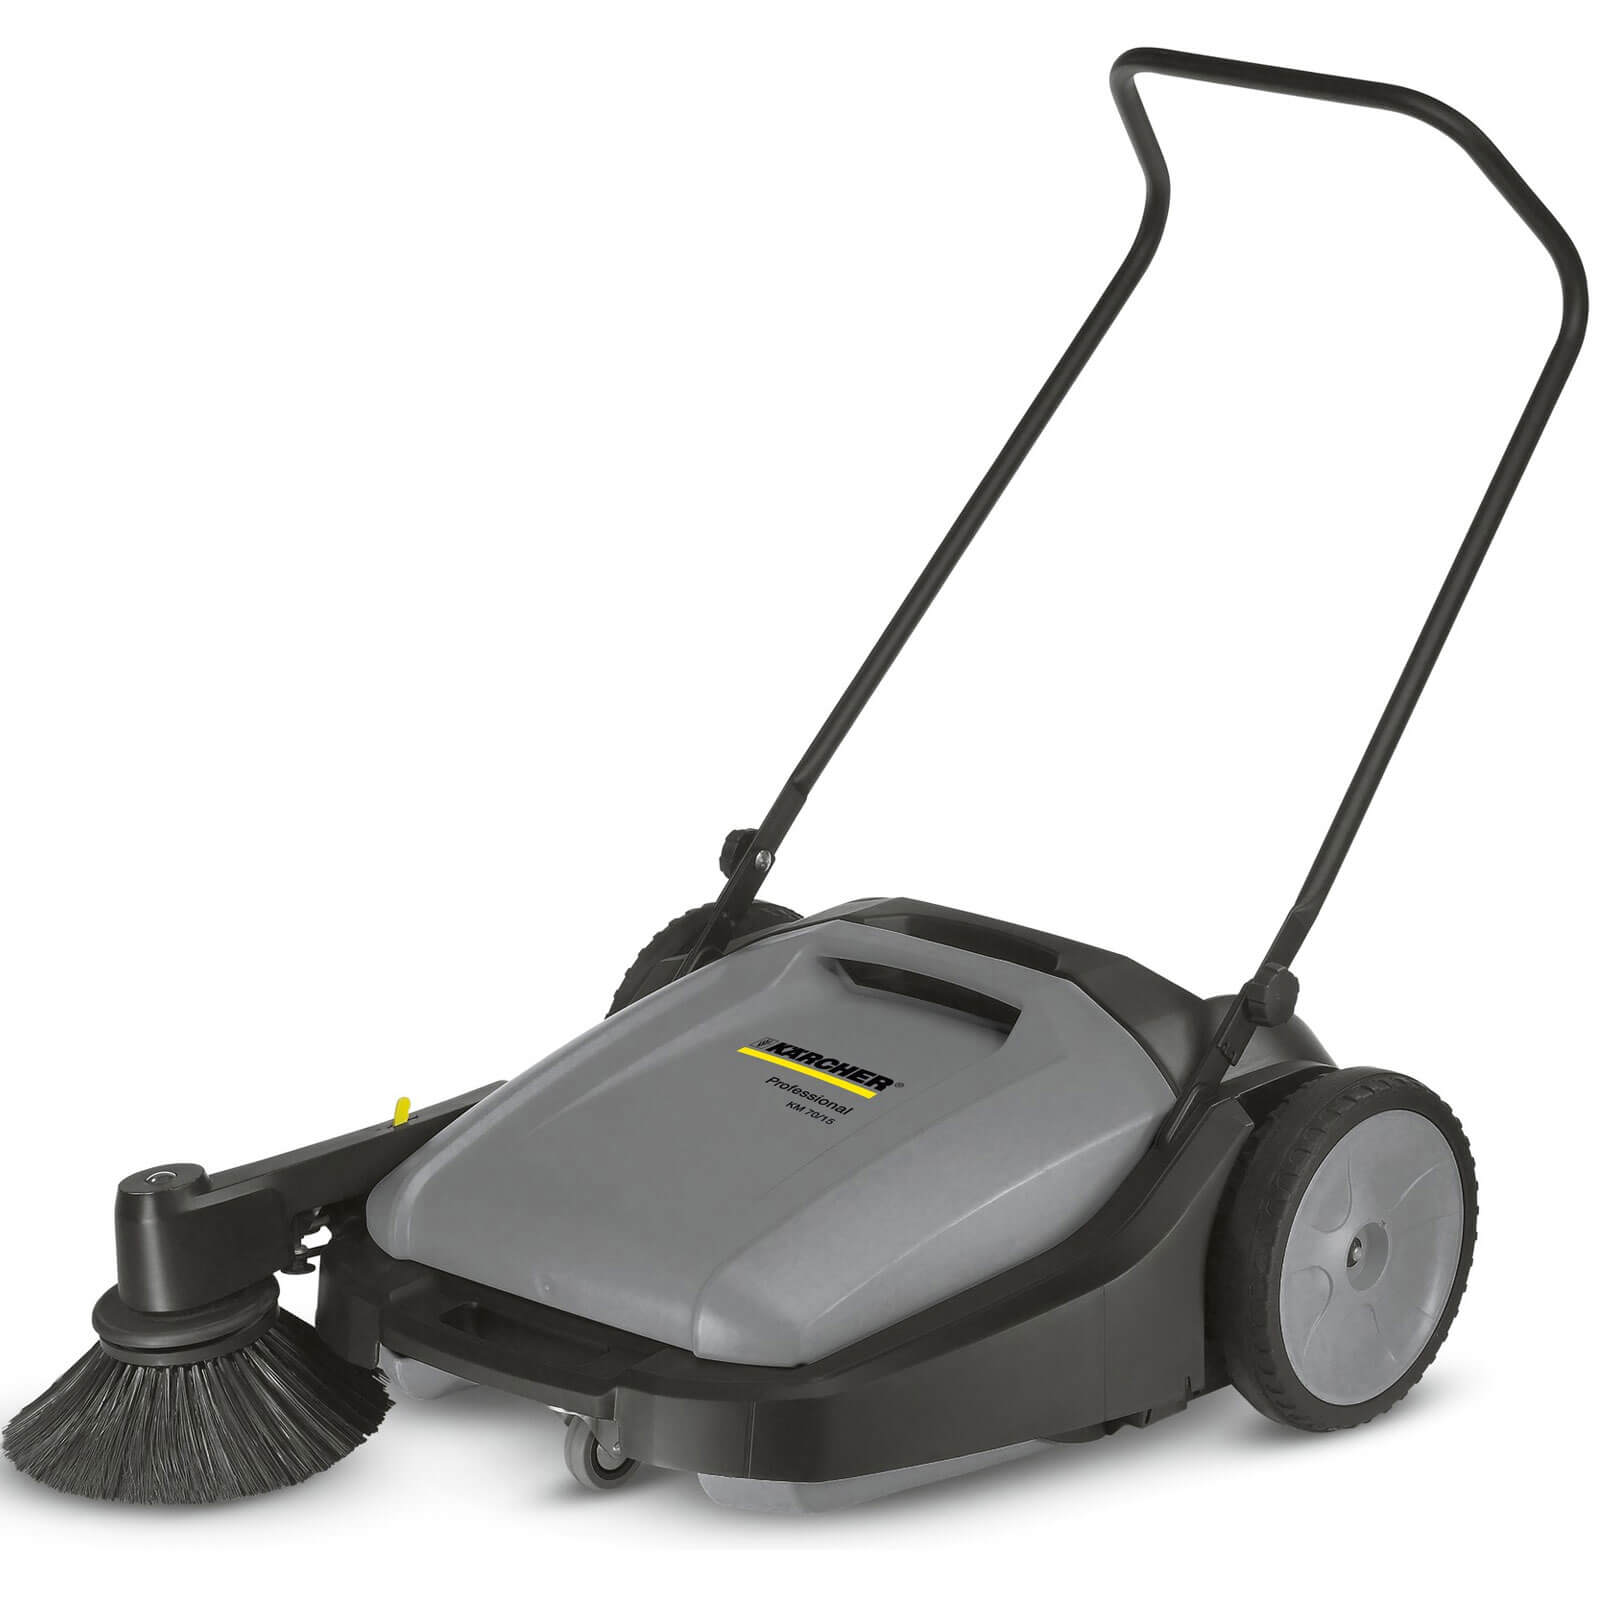 Image of Karcher KM 70/15 Professional Compact Push Floor Sweeper